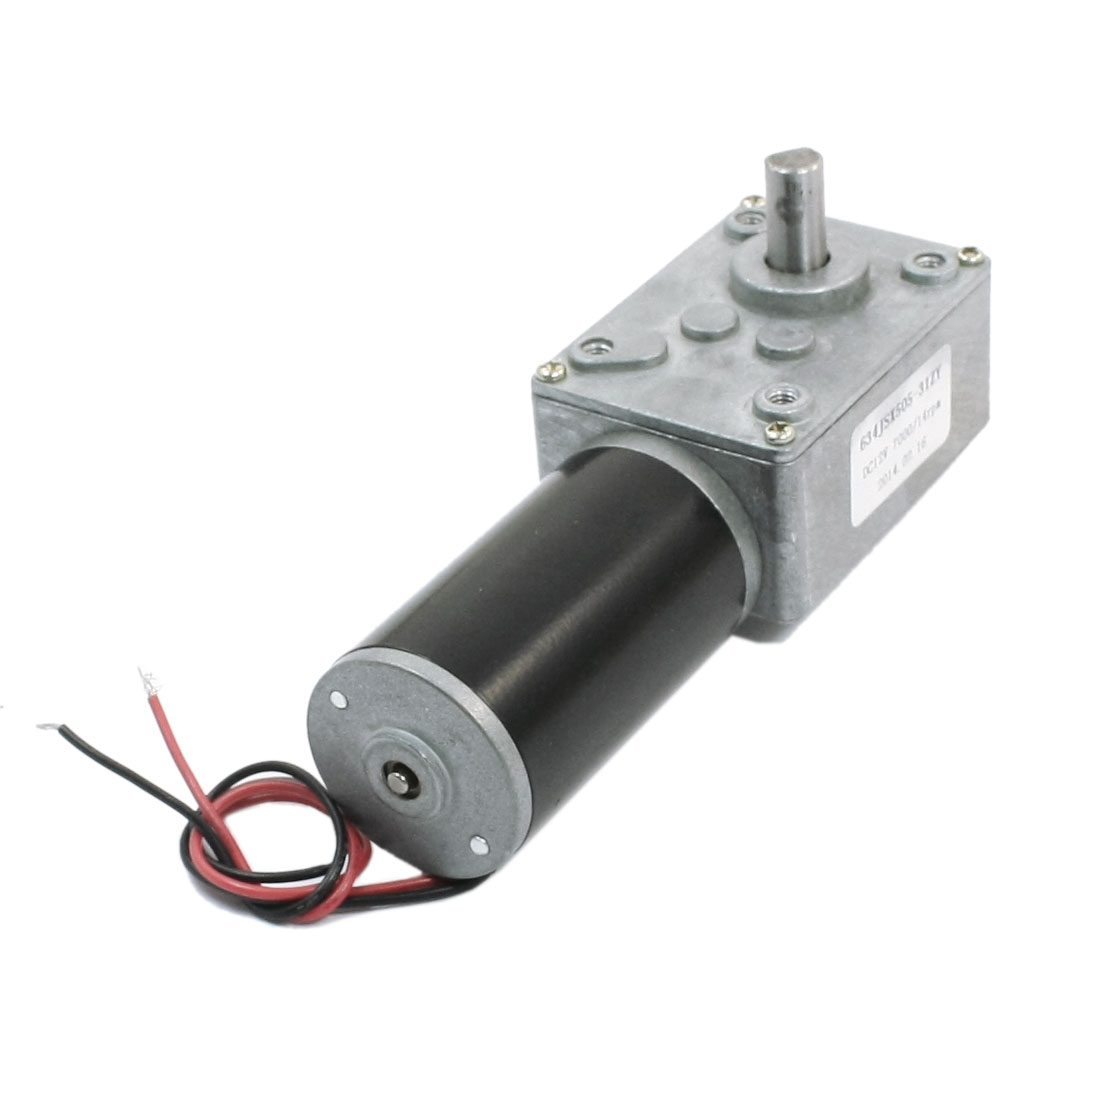 "7.7"" Long Dual Wire 7mm Shaft Reduction Ratio 7000RPM/14RPM Rotary Speed Reduce Worm Geared Box Motor DC12V"